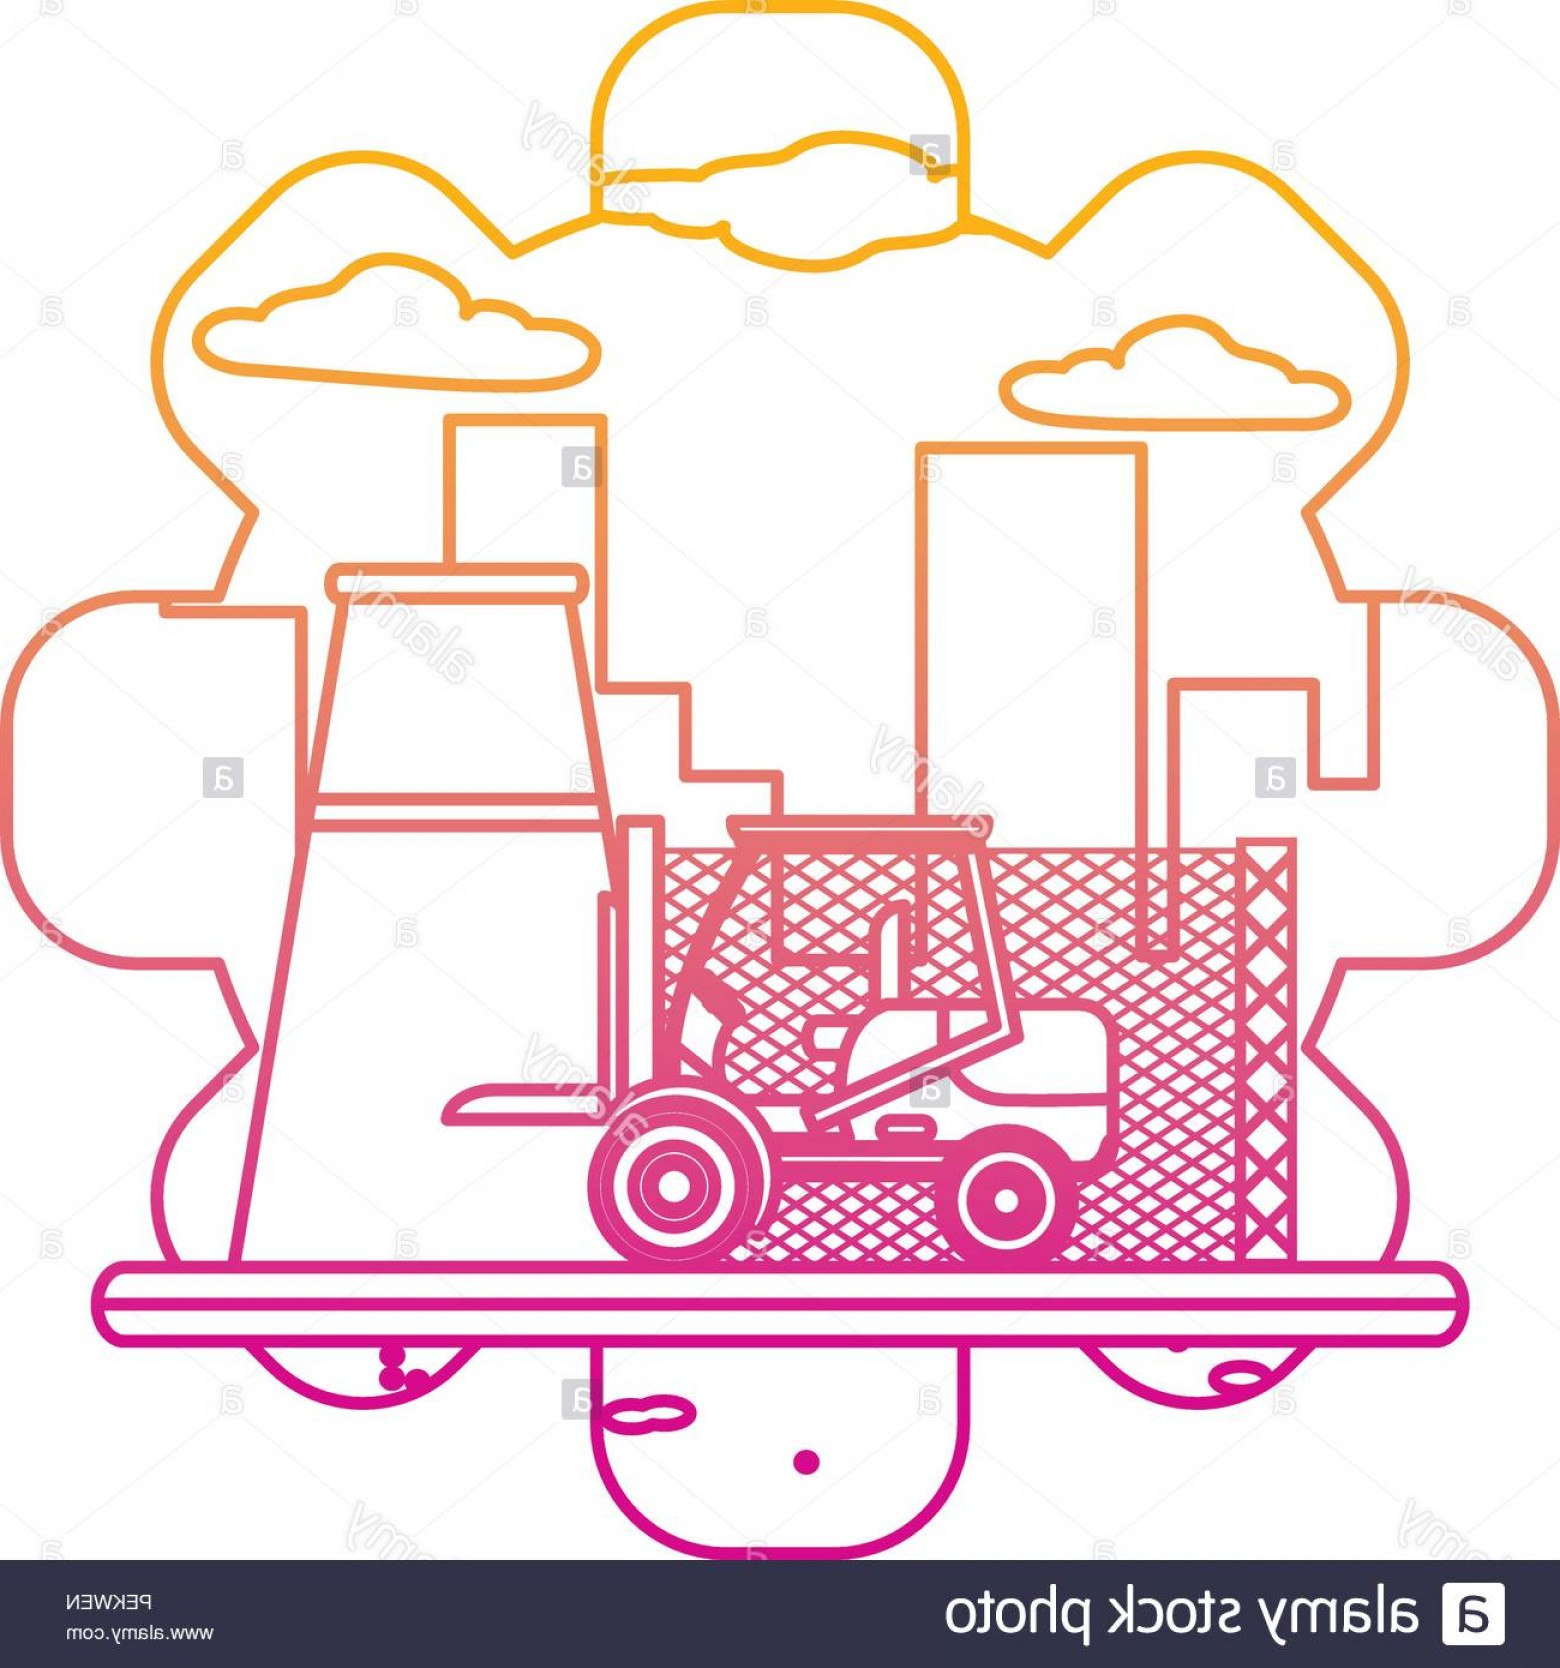 Wen Vehicle Vector Art: Degraded Line Industry Factory And Forklift Construction Machine Image